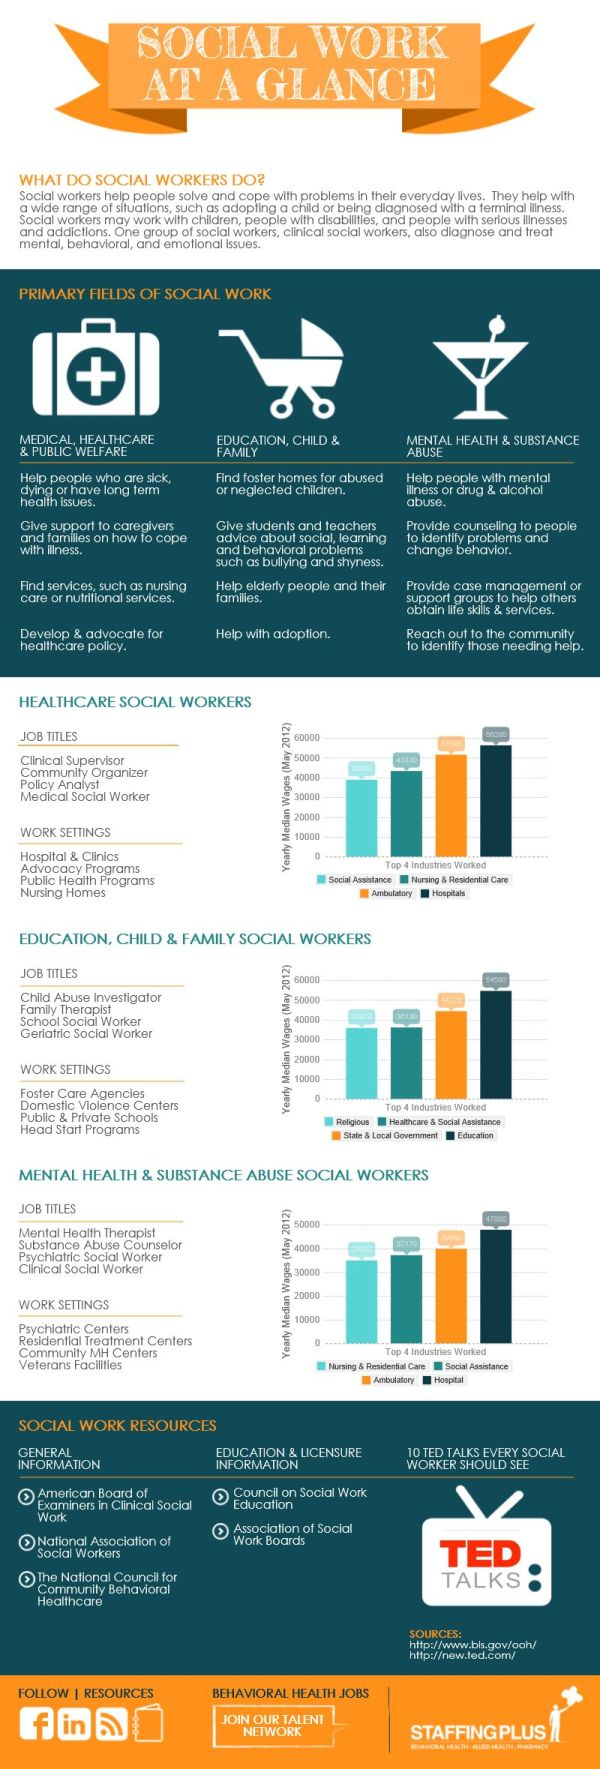 Want to become a social worker? Find out more here about what social workers do in this infographic.